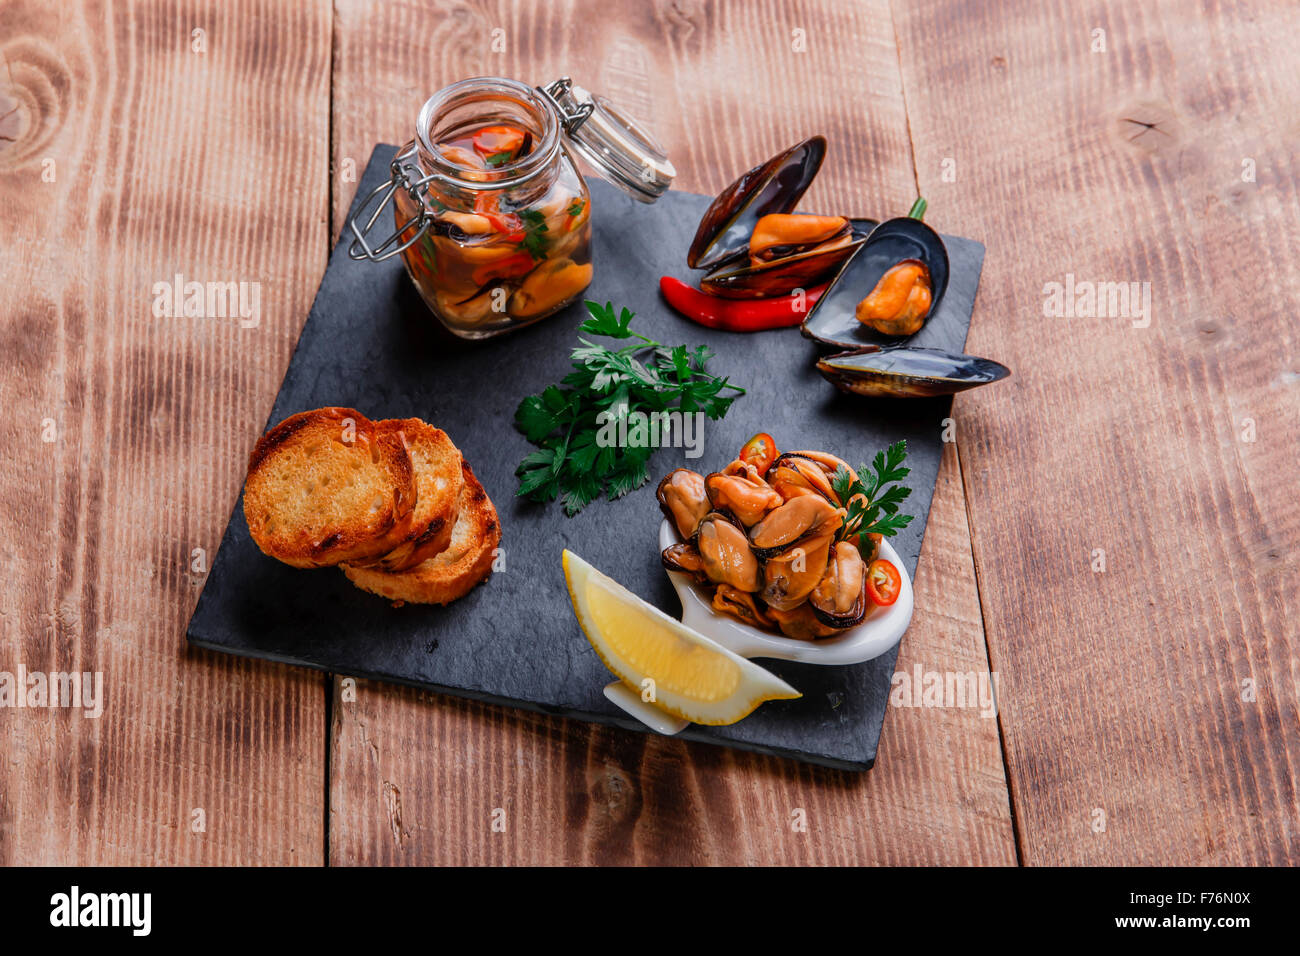 Marinated mussels with lemon and croutons - Stock Image